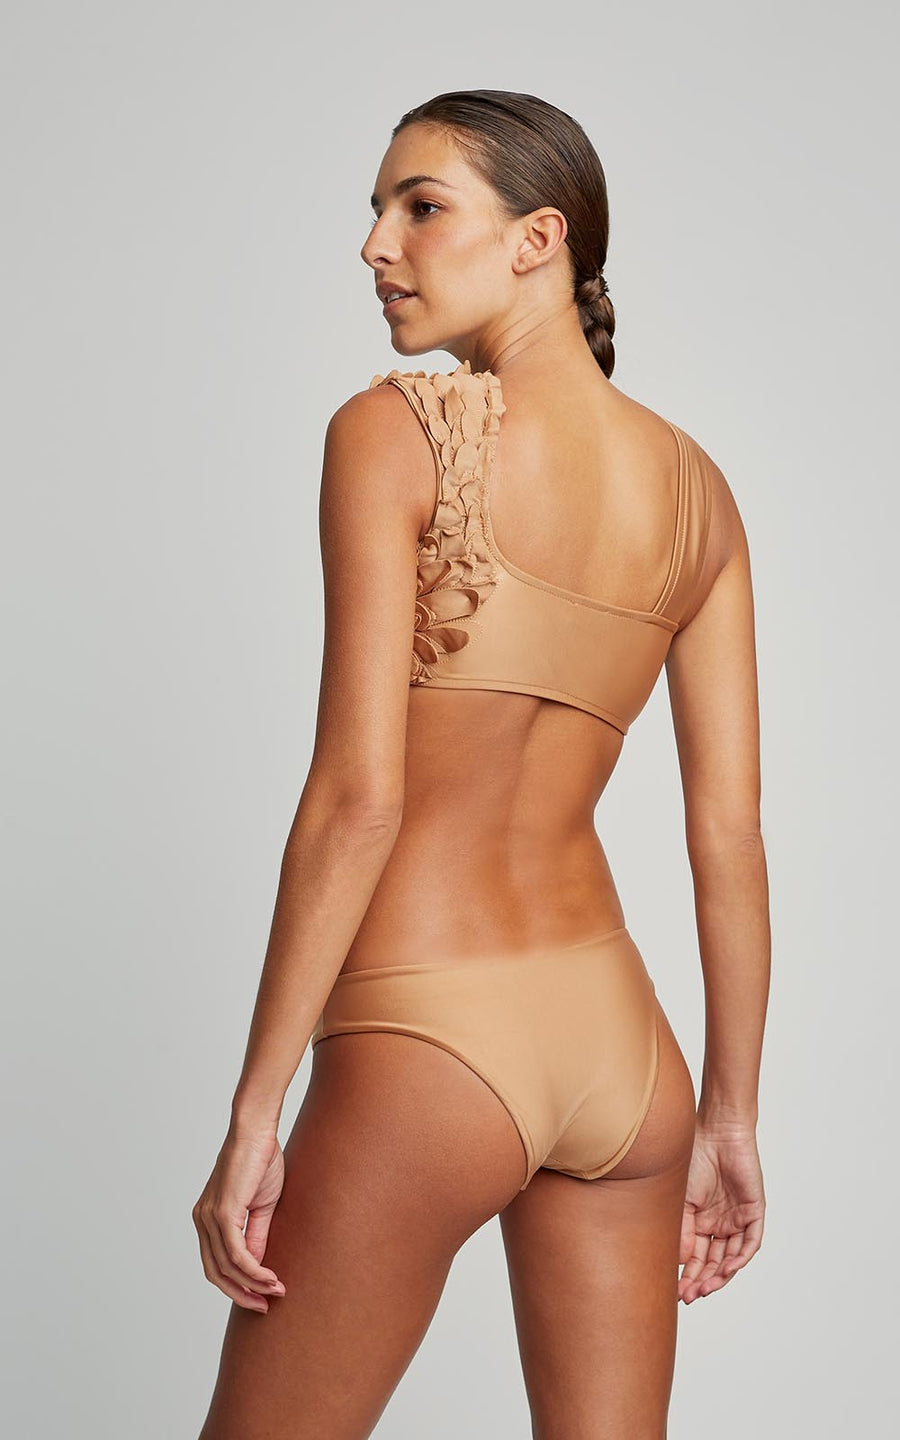 Almond Petals Runway Top and Swim Runway Bottom